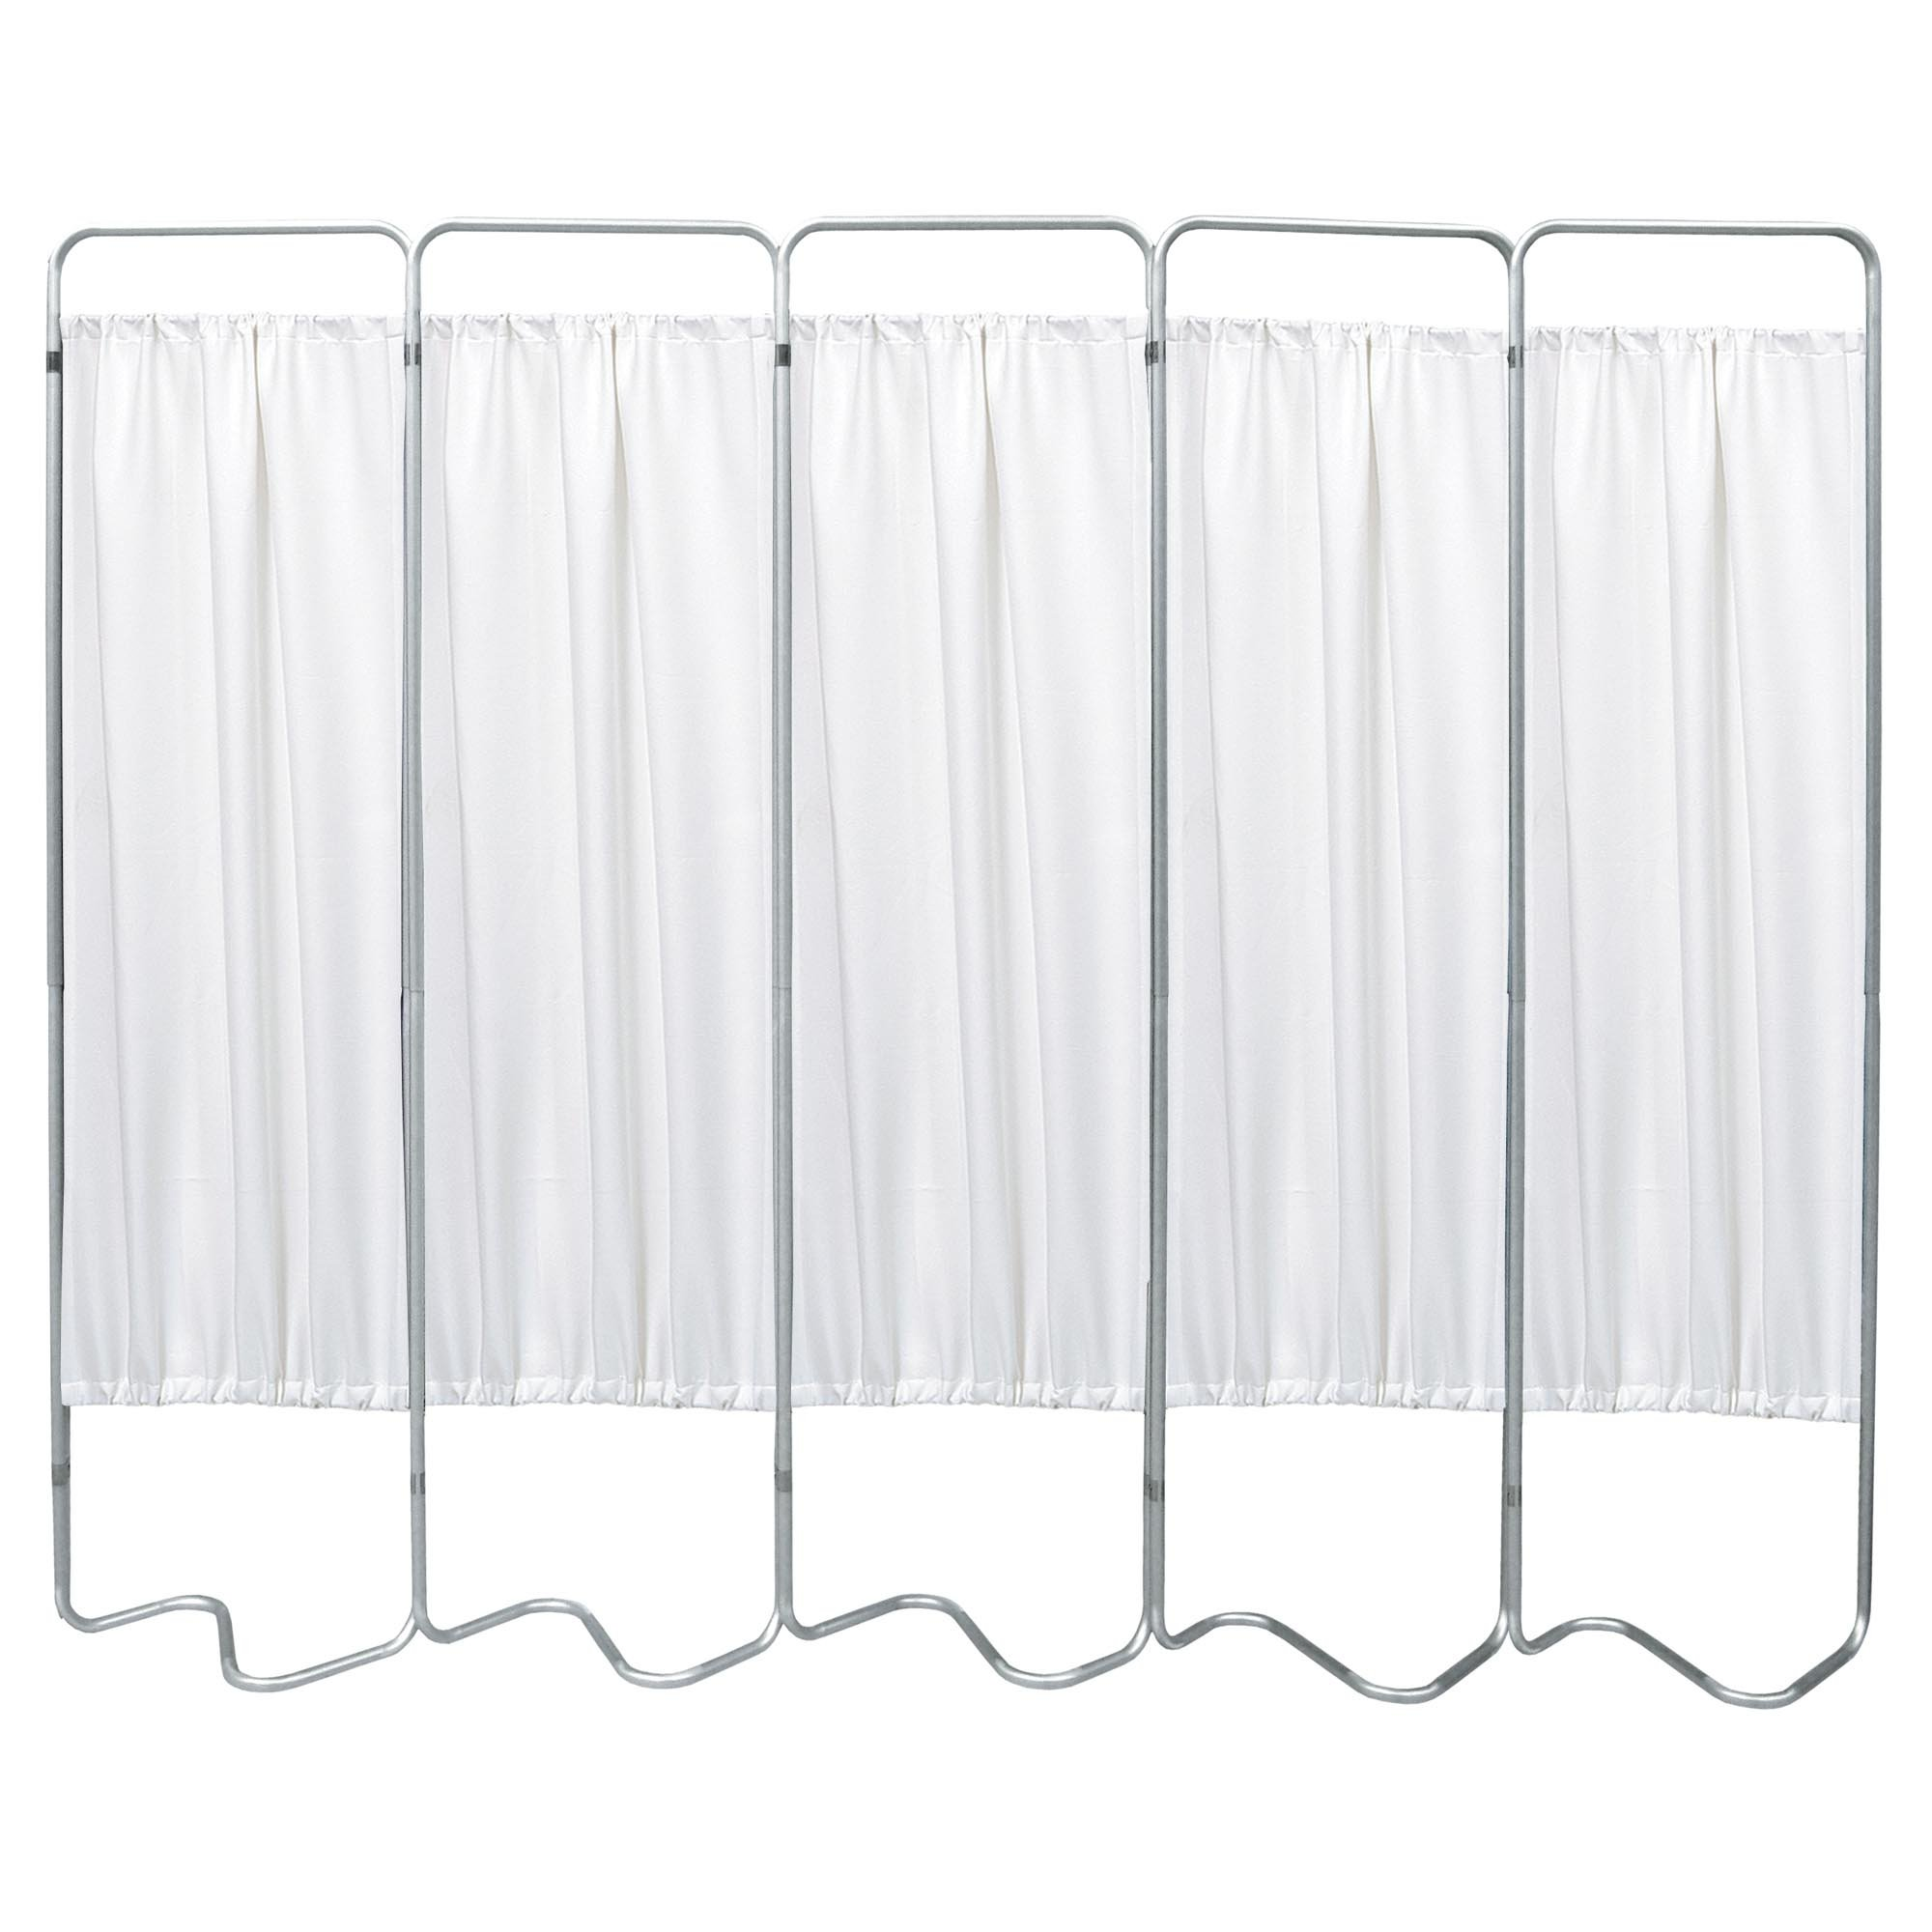 Beamatic 5 Section Folding Privacy Screen - White Vinyl Screen Panel